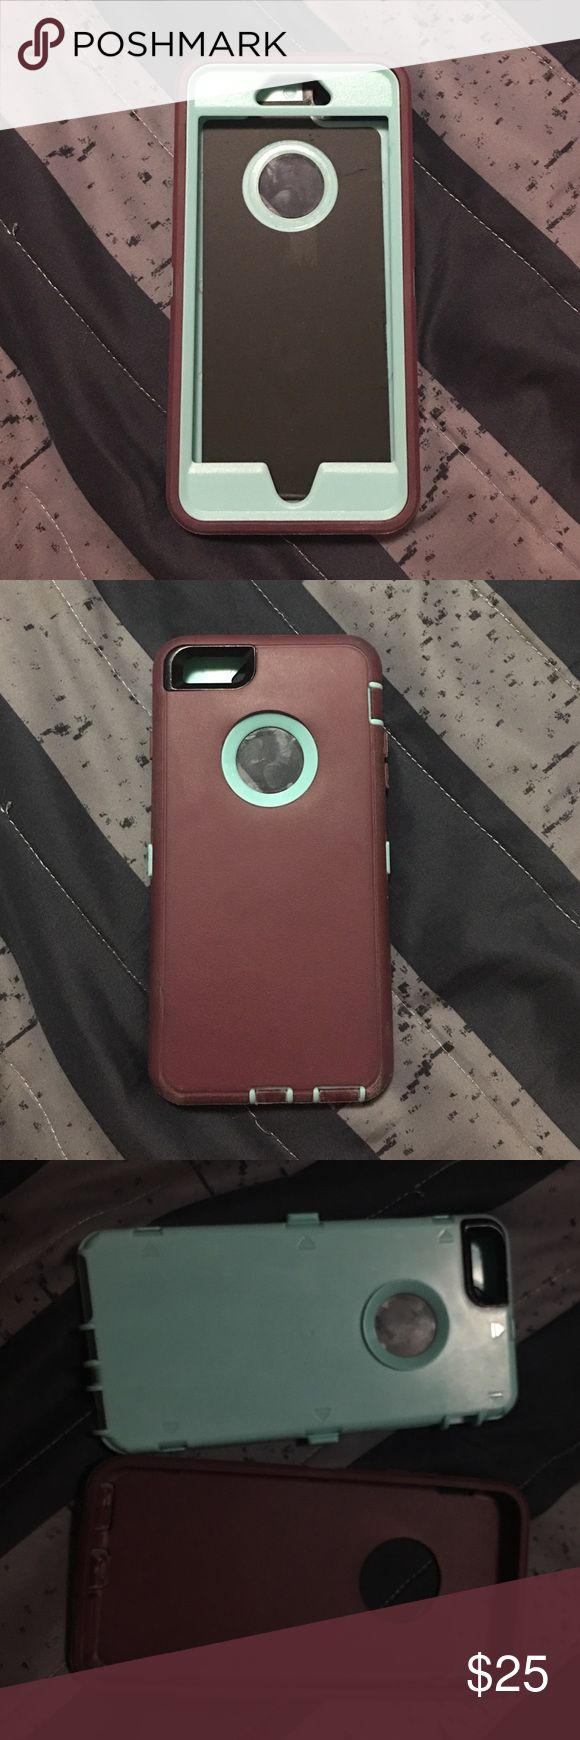 iPhone 6 and 6s Otter Box Teal and purple otter box , will fit an iPhone 6 Plus and iPhone 6s Plus Accessories Phone Cases